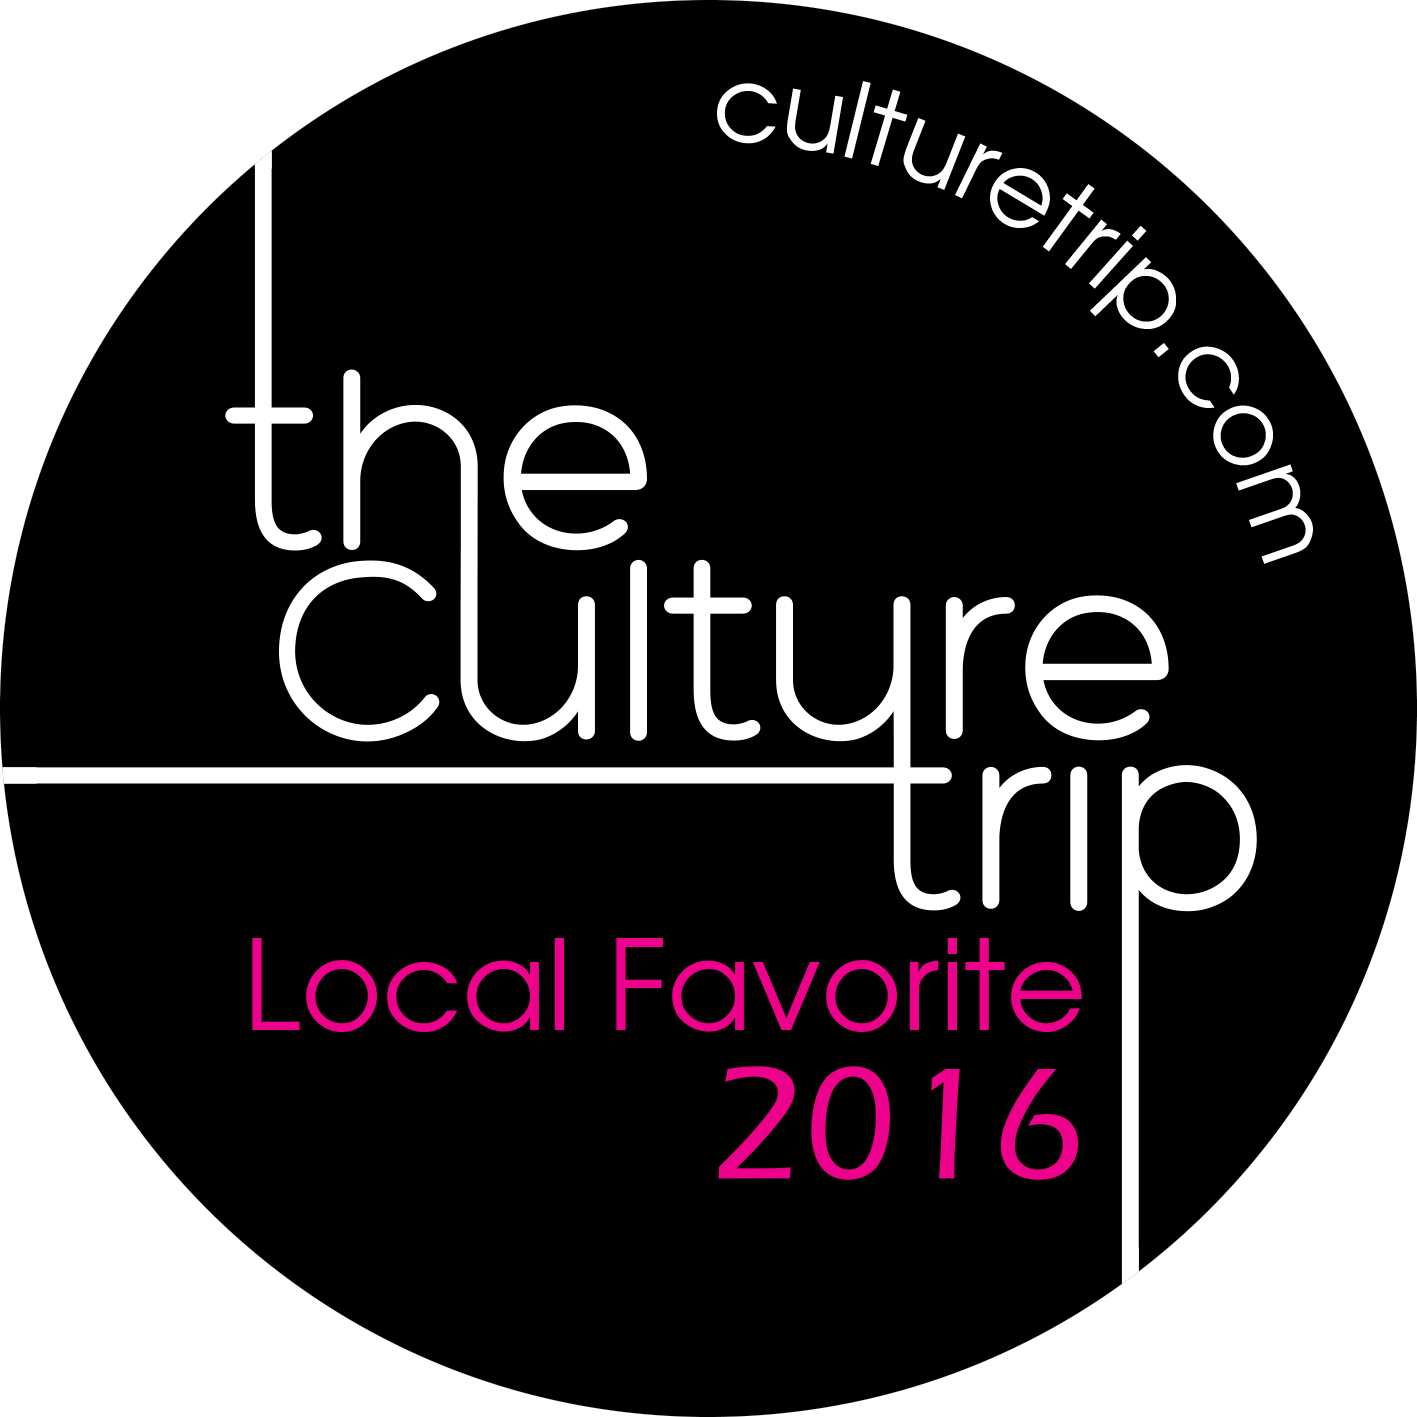 LOCAL FAVORITE AWARD 2016